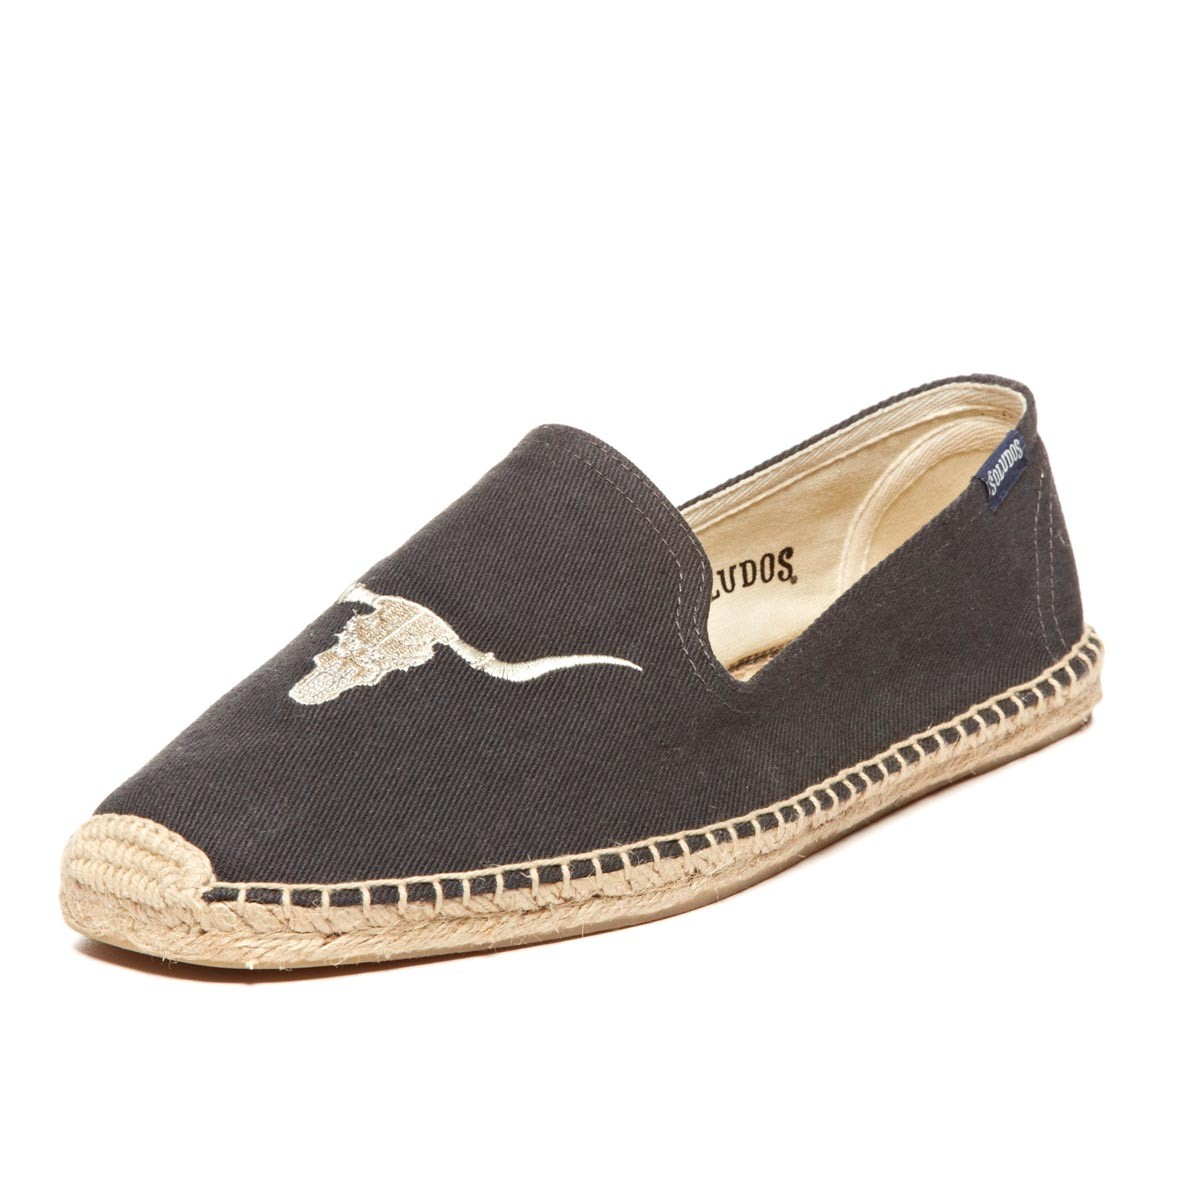 ON SALE TODAY! Don't miss this new low price for tory burch - samantha smoking slipper (black) women's slippers.